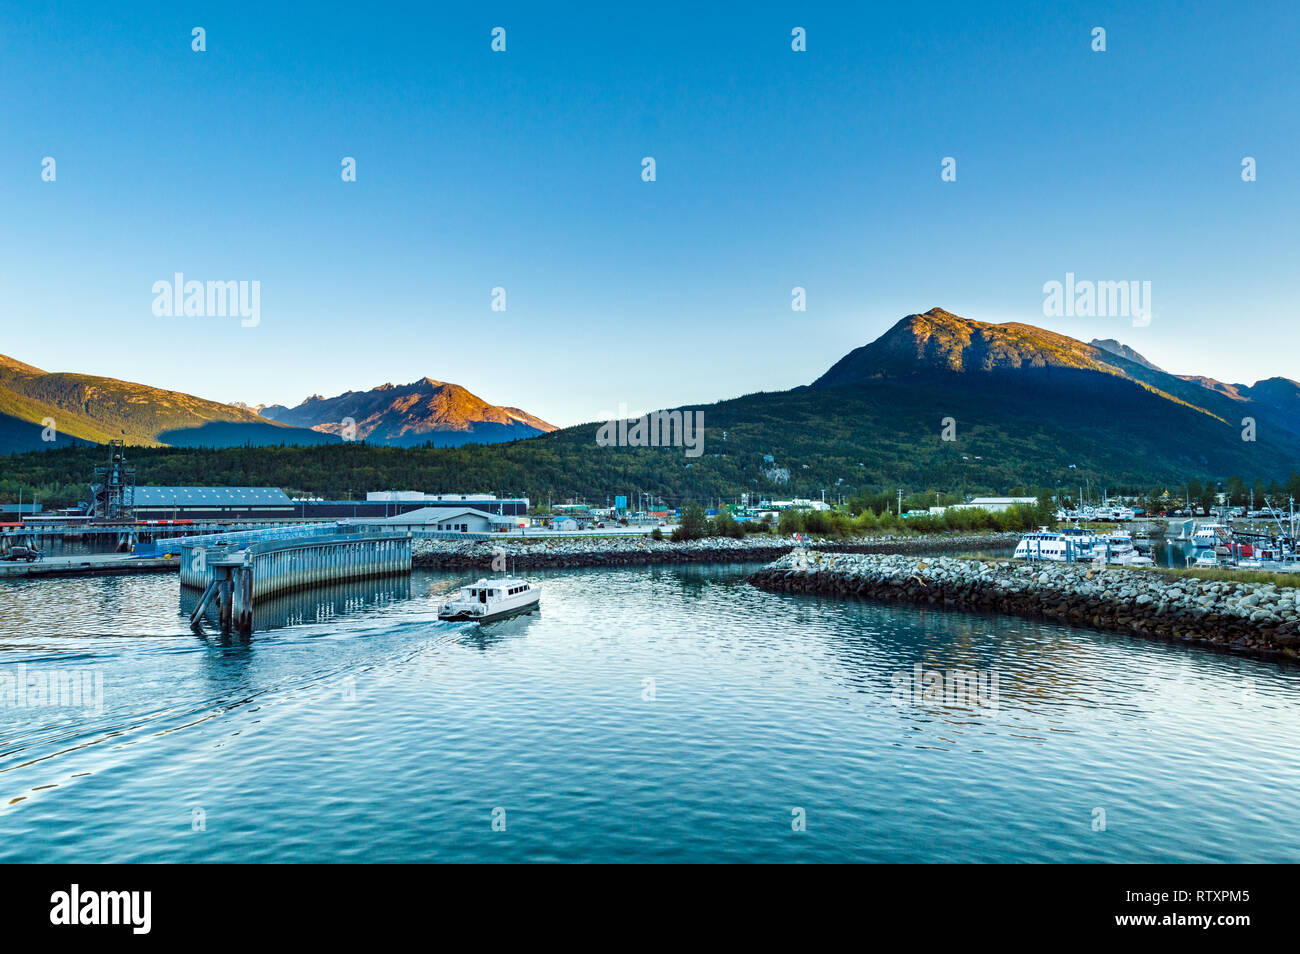 September 15, 2018 - Skagway, Alaska: Fjordlands Express commuter and tourist catamaran ferry enters harbour from Taiya Inlet in the early morning. - Stock Image